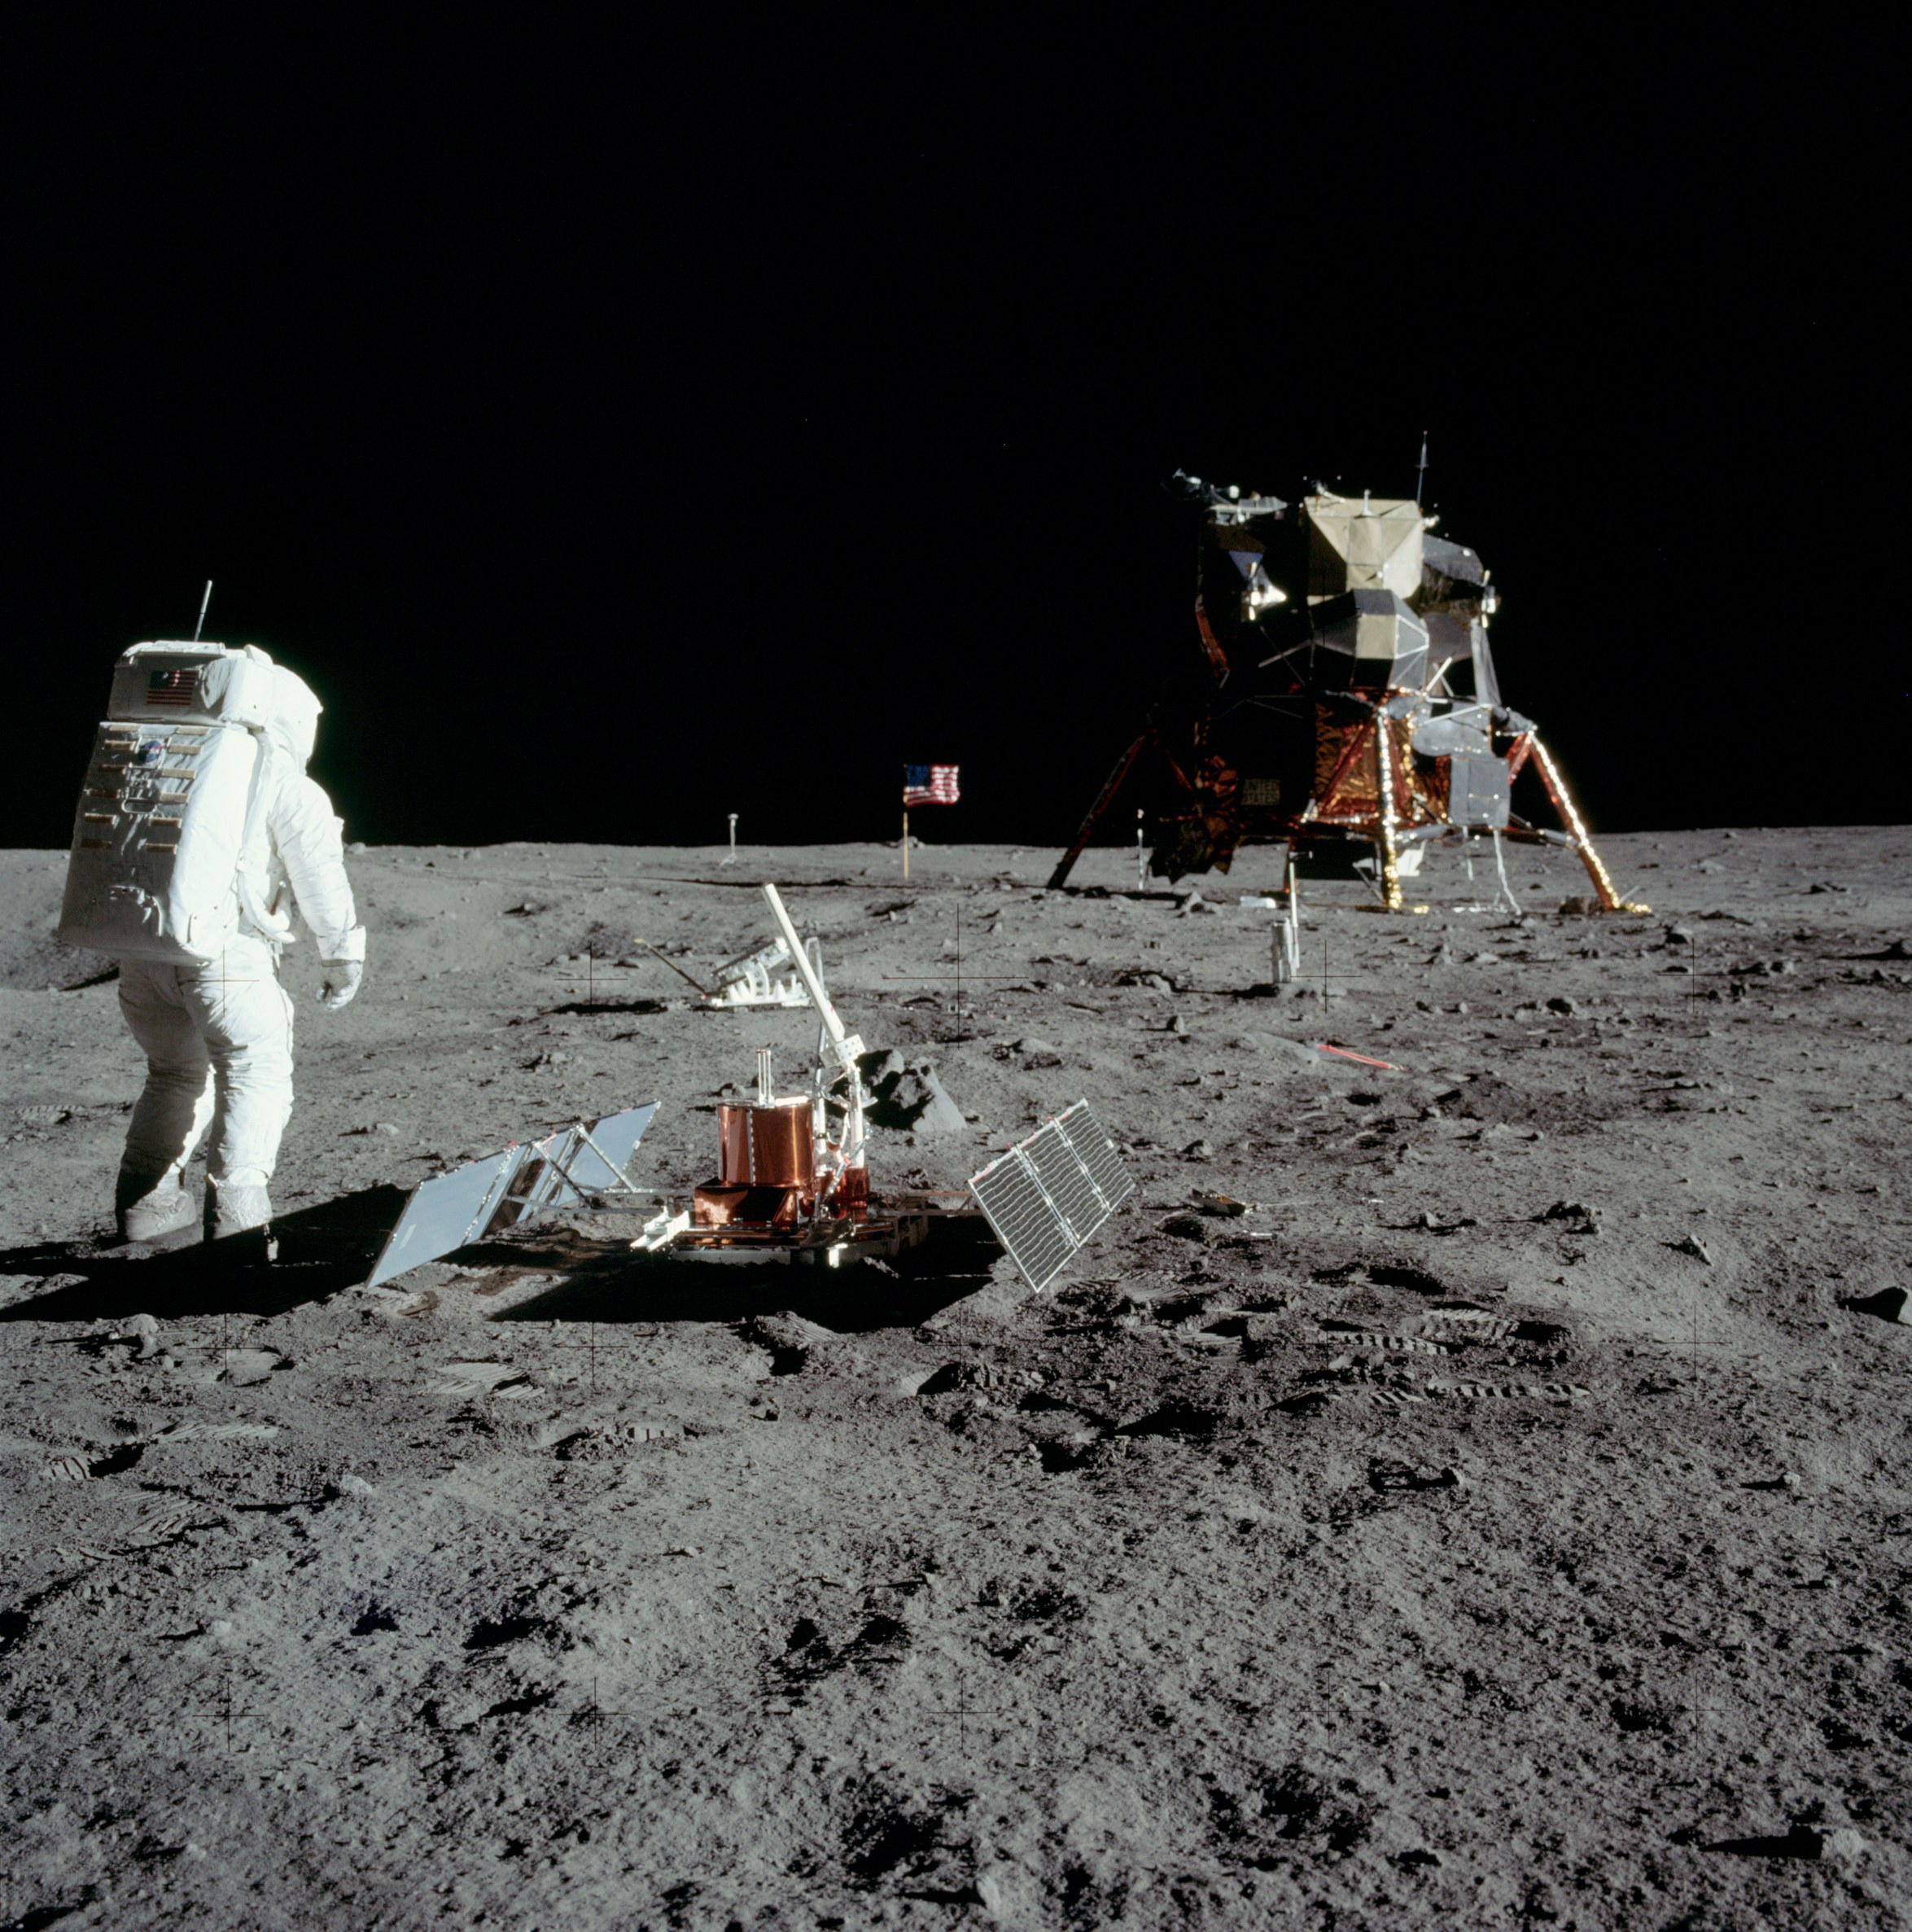 Apollo 11 astronaut Buzz Aldrin with the seismic experiment. Solar panels have deployed on the left and right and the antenna is pointed at Earth. Image credit: NASA